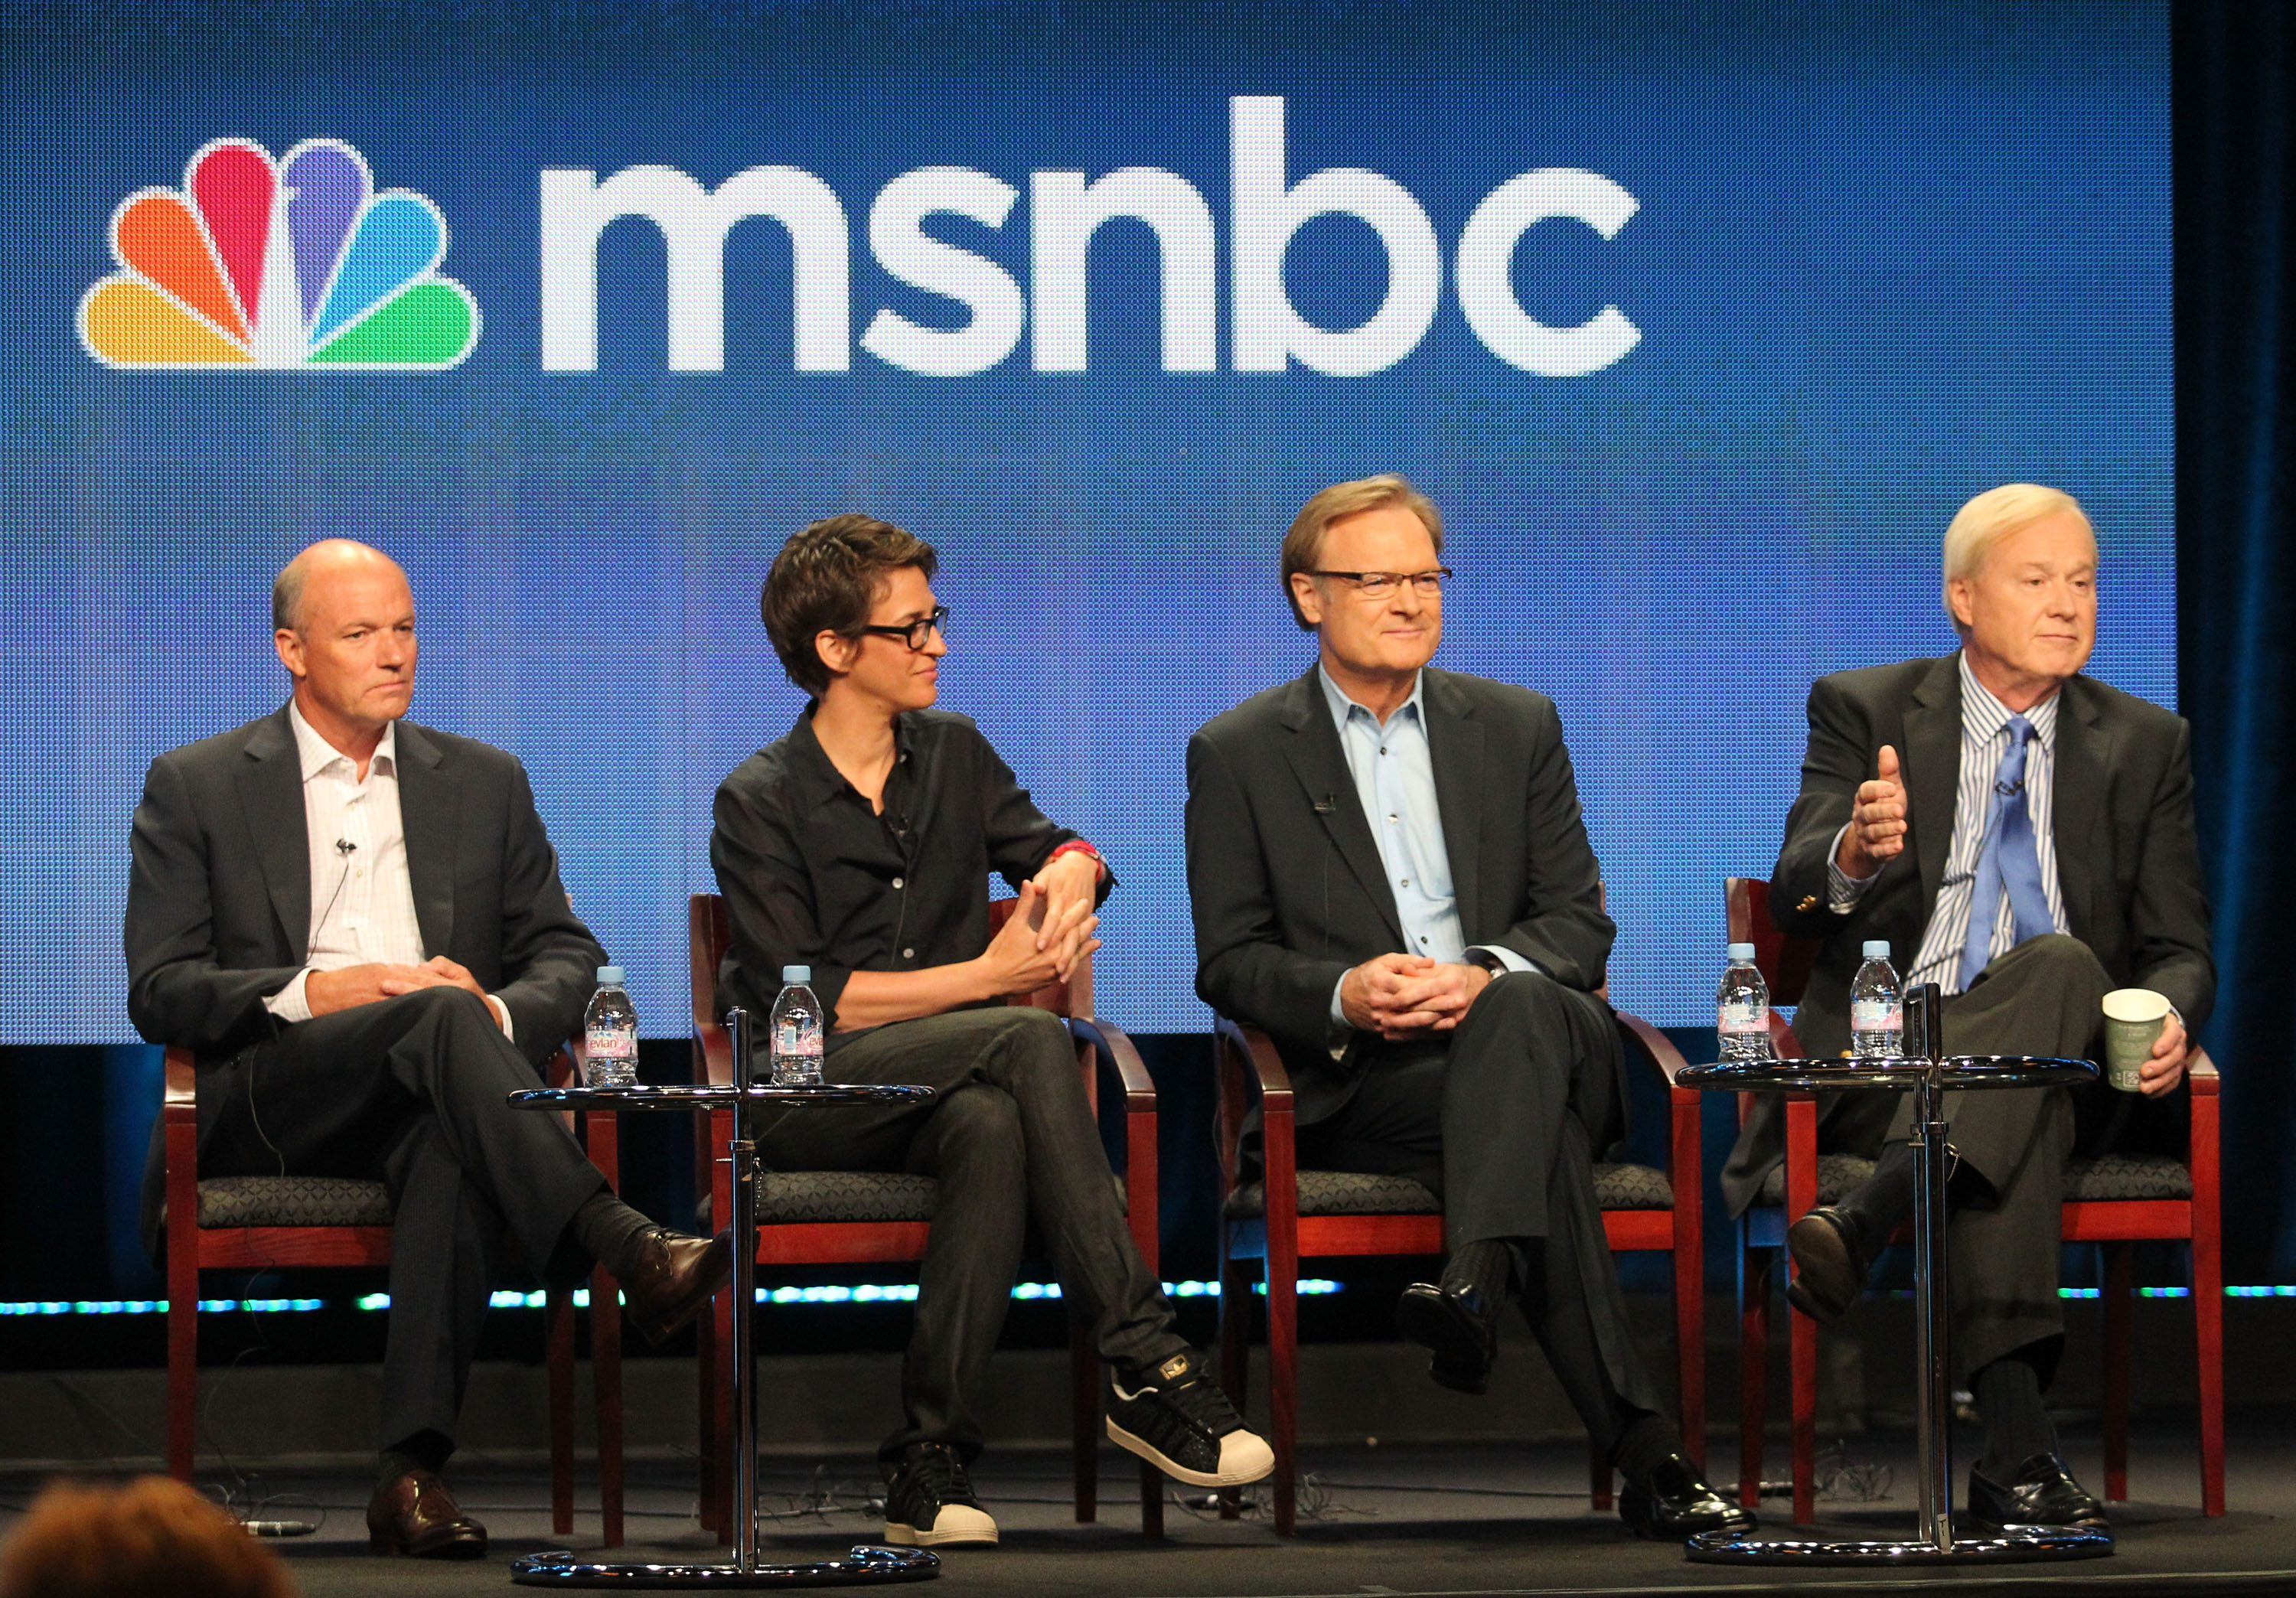 President of MSNBC Phil Griffin, host of 'The Rachel Maddow Show' Rachel Maddow, host of 'The Last Word' Lawrence O' Donnell and host of 'Hardball' Chris Matthews speak during the 'MSNBC' panel during the NBC Universal portion of the 2011 Summer TCA Tour held at the Beverly Hilton Hotel on August 2, 2011 in Beverly Hills, California. (Photo by Frederick M. Brown/Getty Images)